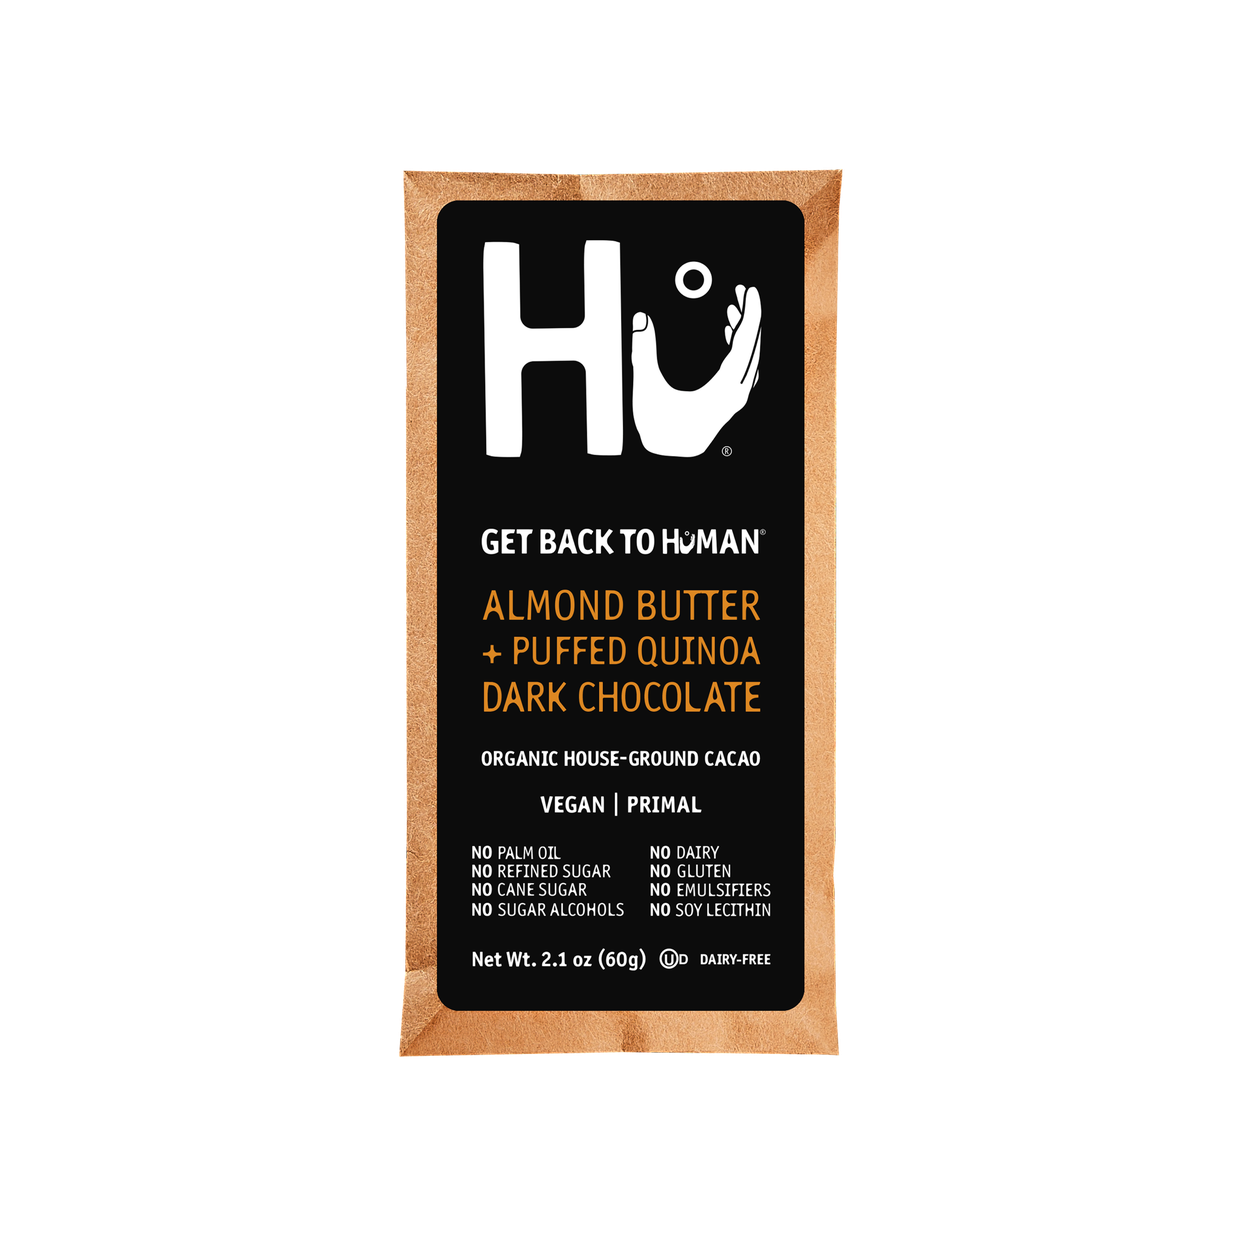 hu almond butter + puffed quinoa dark chocolate